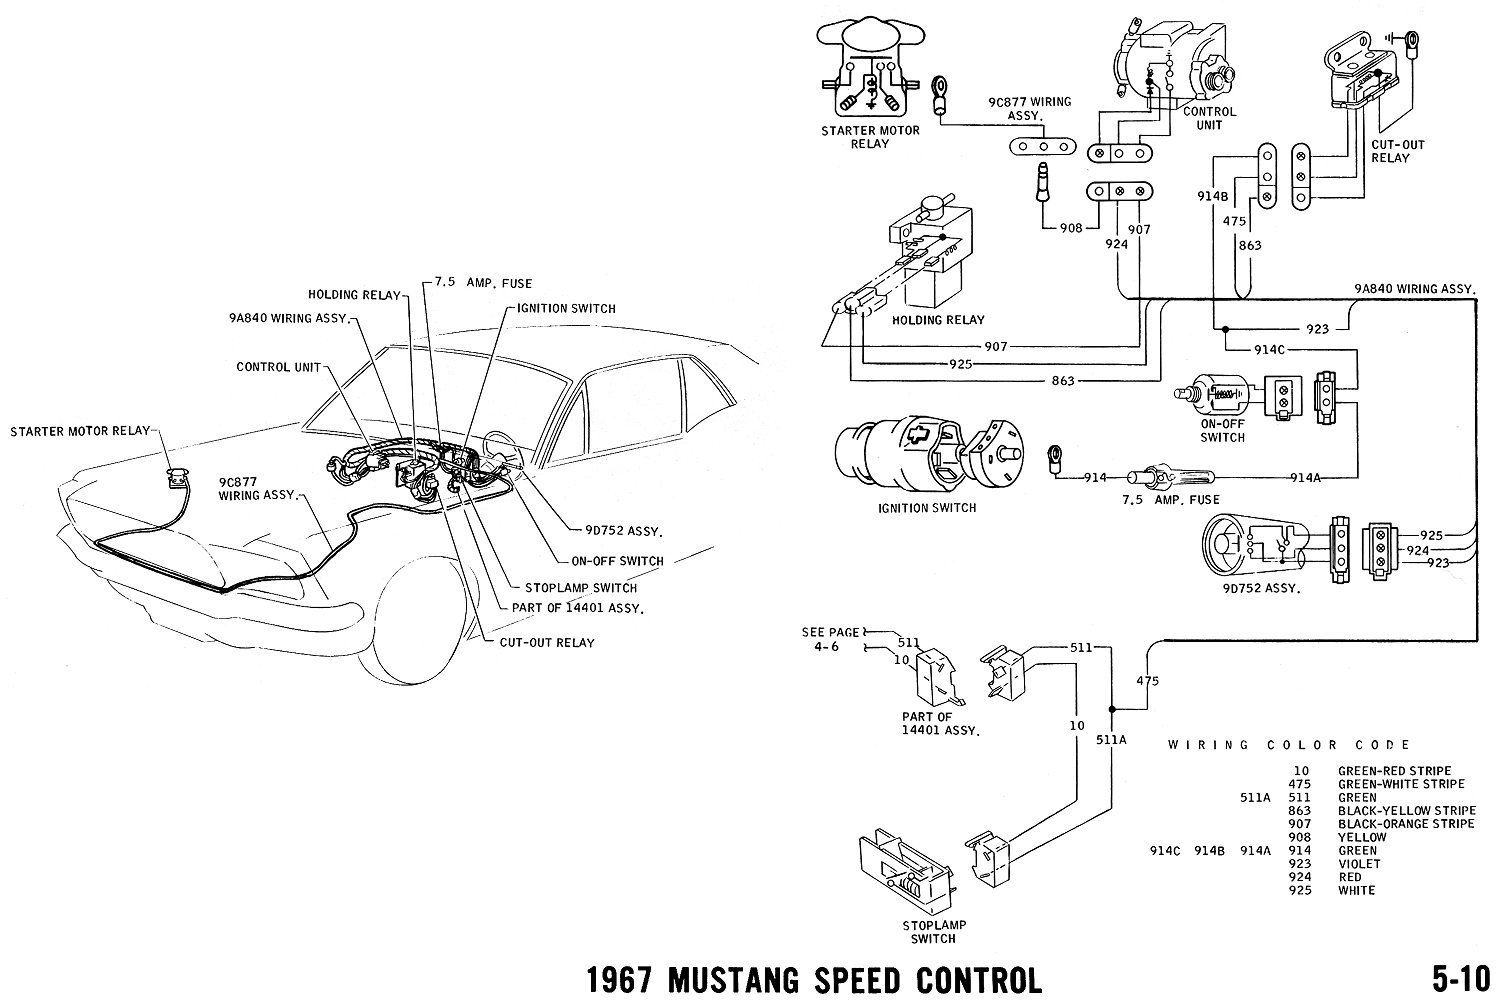 67 Camaro Rs Headlight Wiring Diagram Trusted Diagrams Harness Schematic For Dash Mustang Under Free Engine Starter